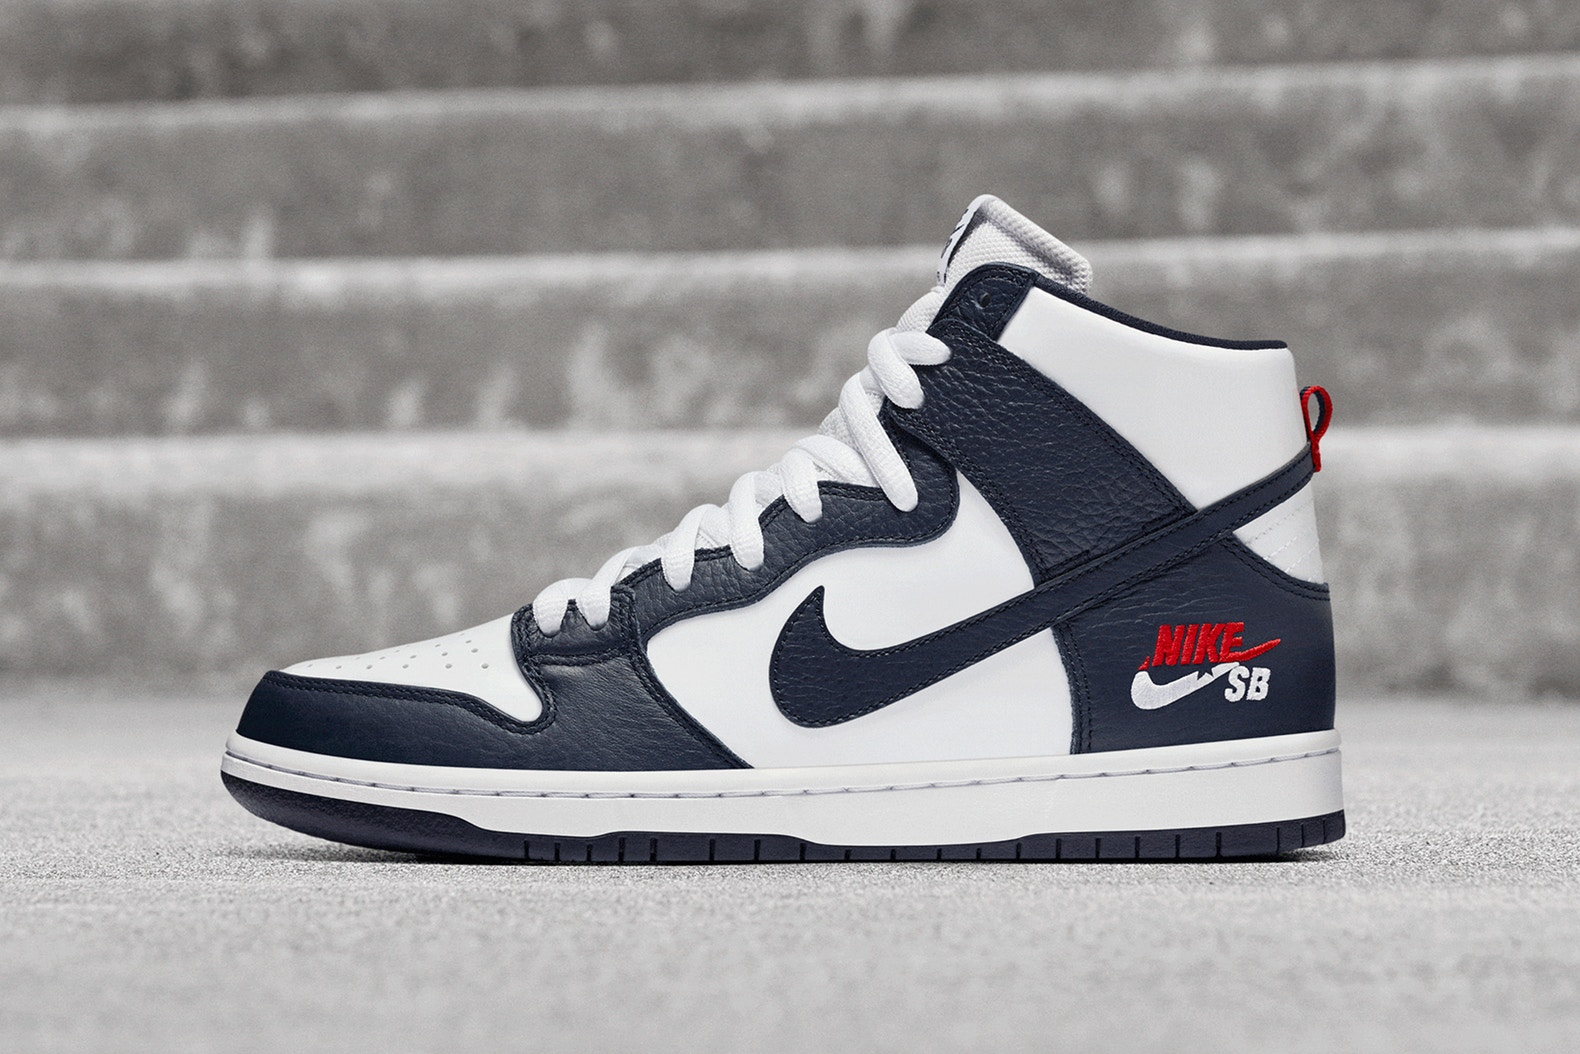 Nike SB Dunk High Pro Dream Team Takes Us Back To 1992 1